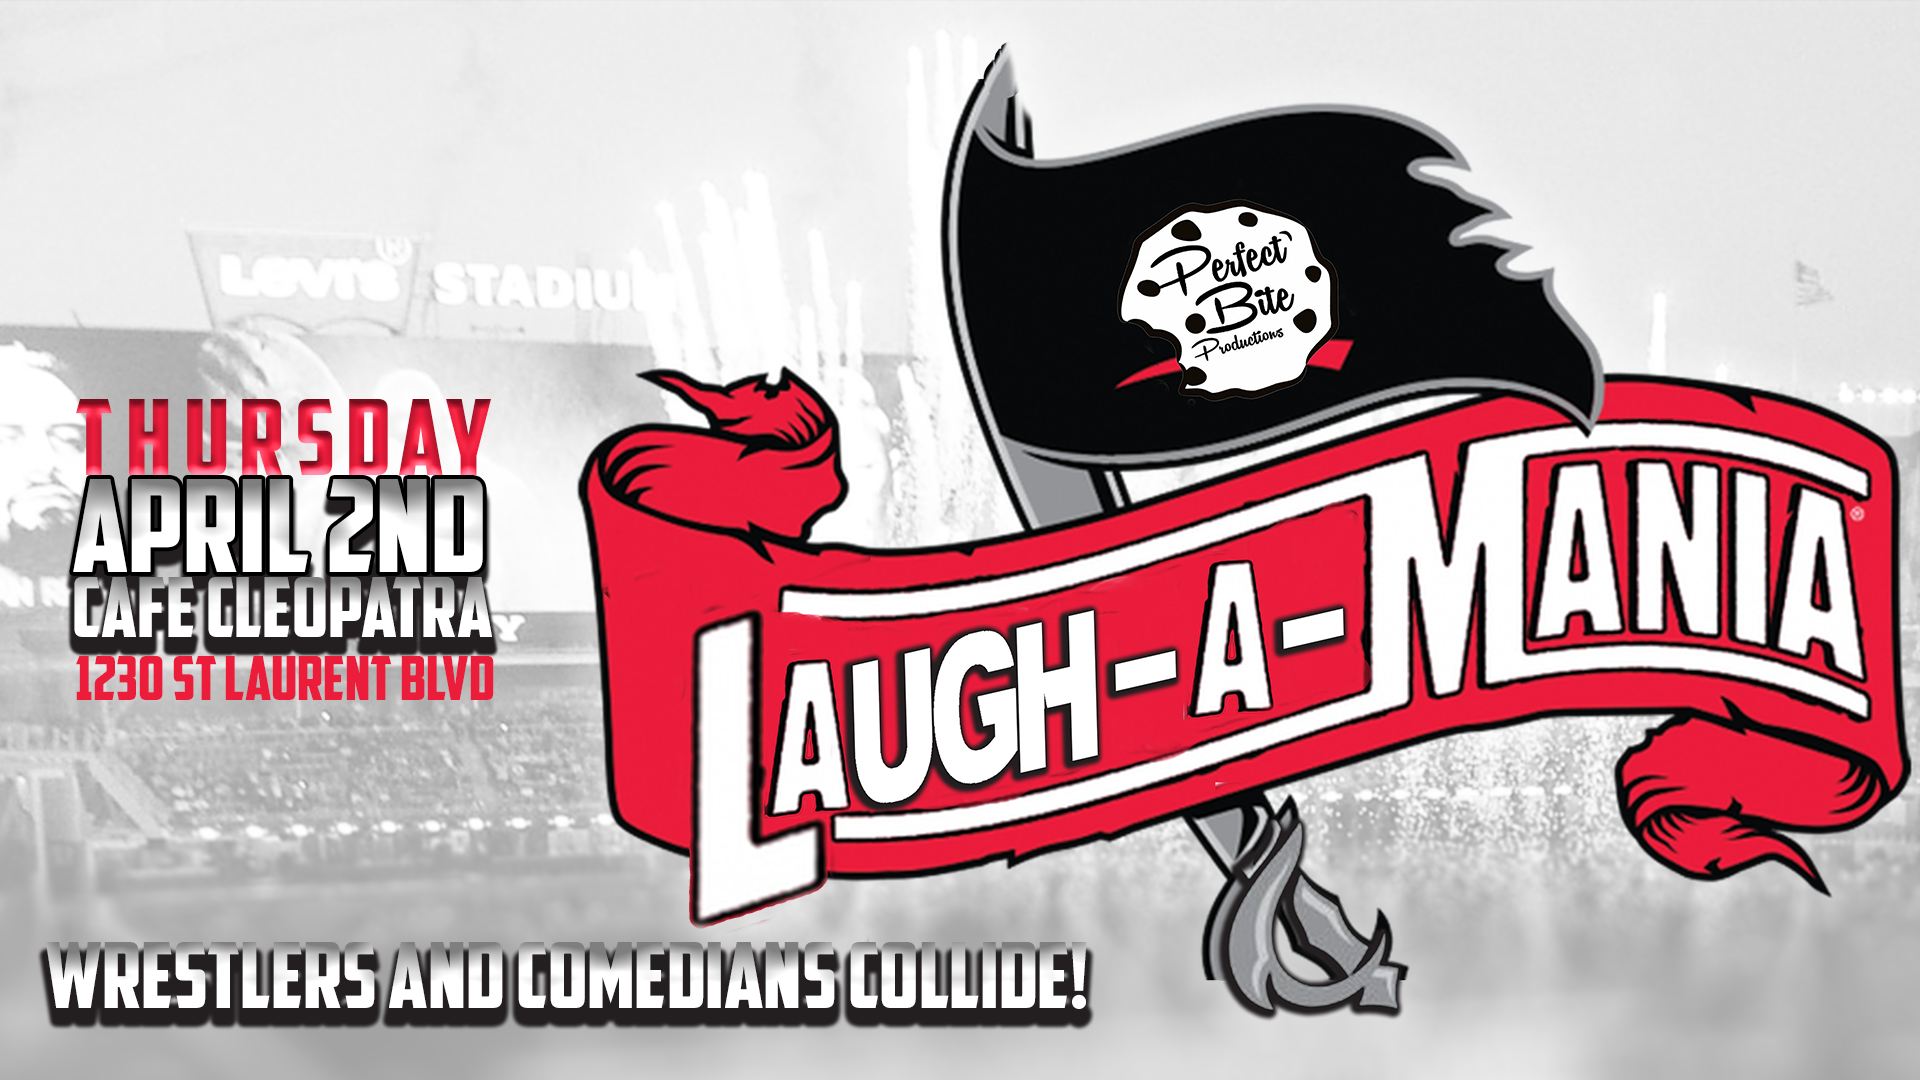 LAUGH-A-MANIA: Wrestling and Comedy Collide!